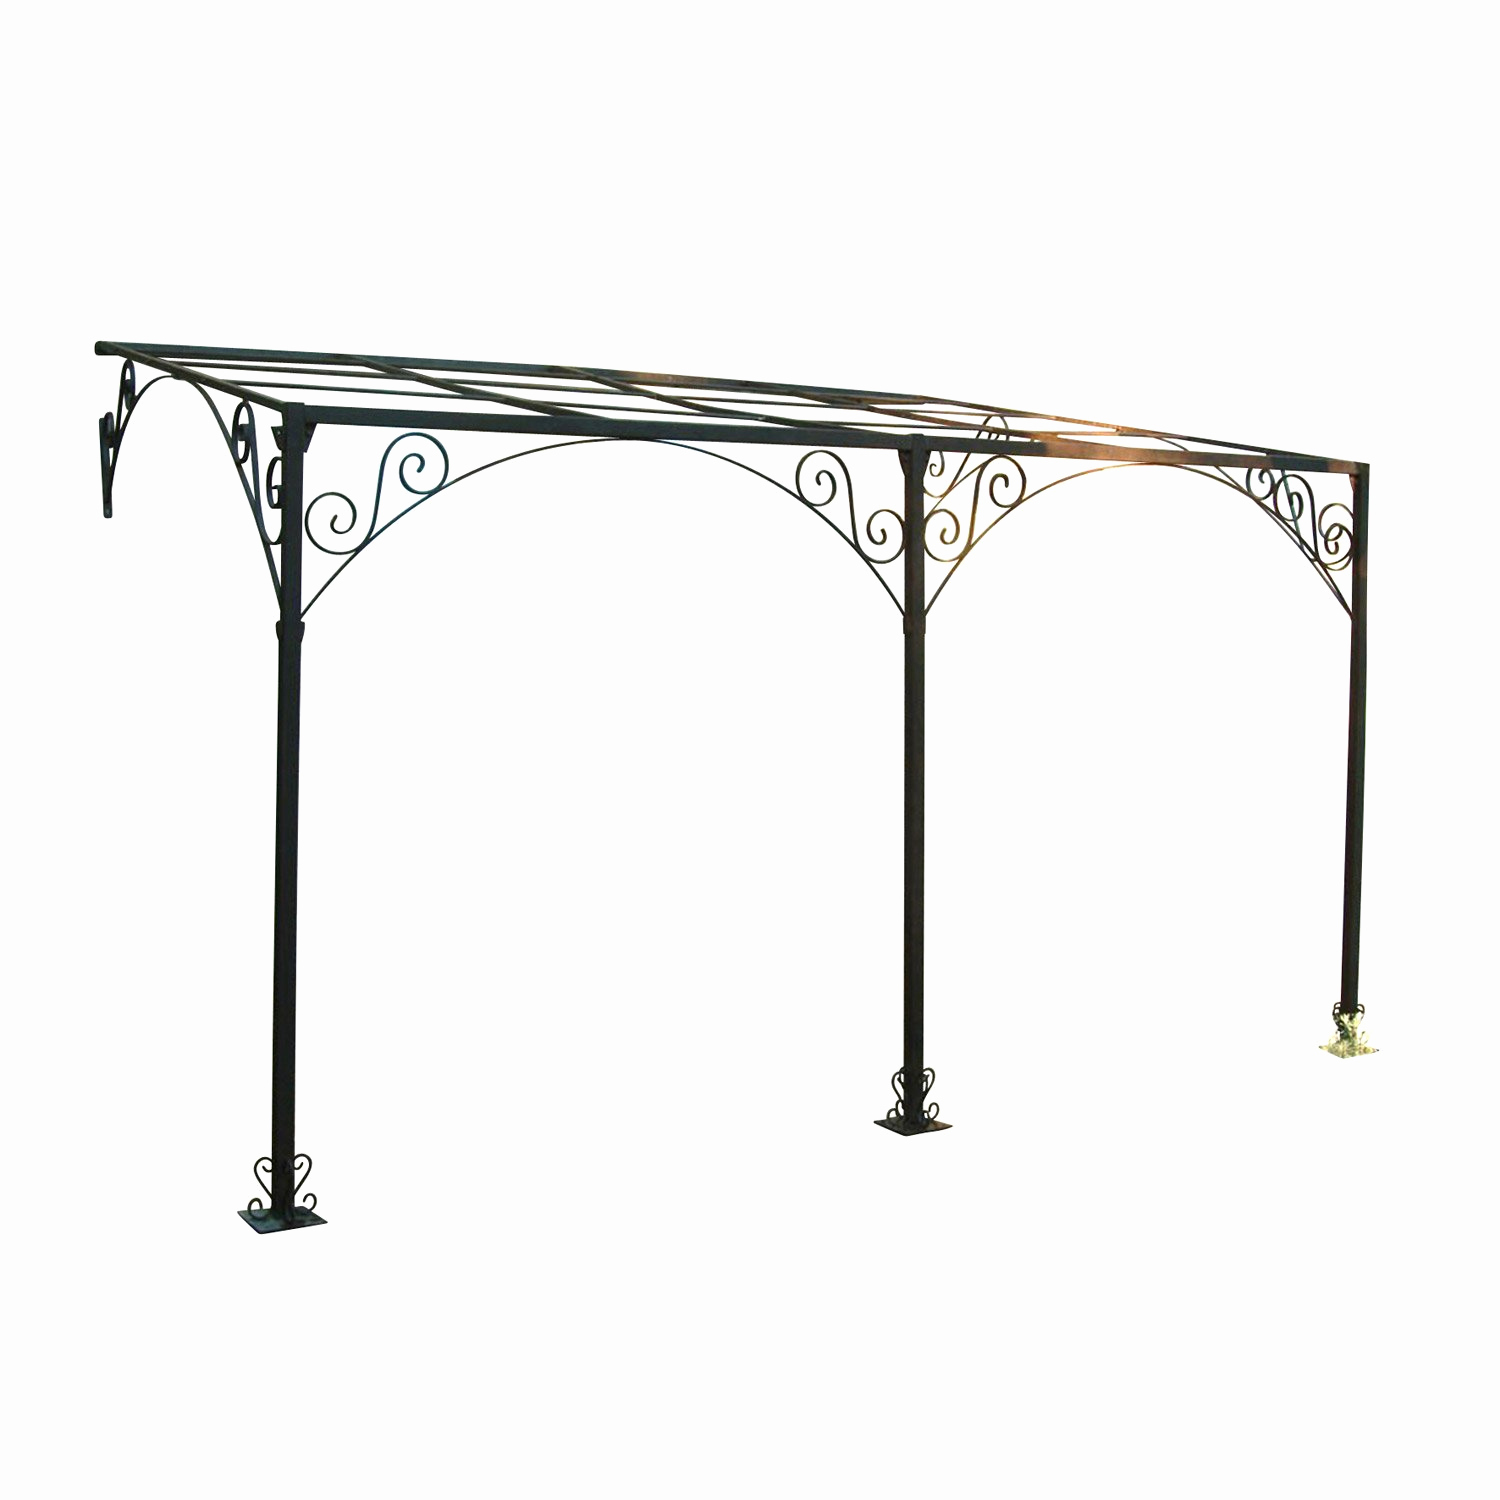 Table Bac A Sable Leroy Merlin Impressionnant Stock tonnelle Adossee Store Retractable Trendy Pergola Aluminium